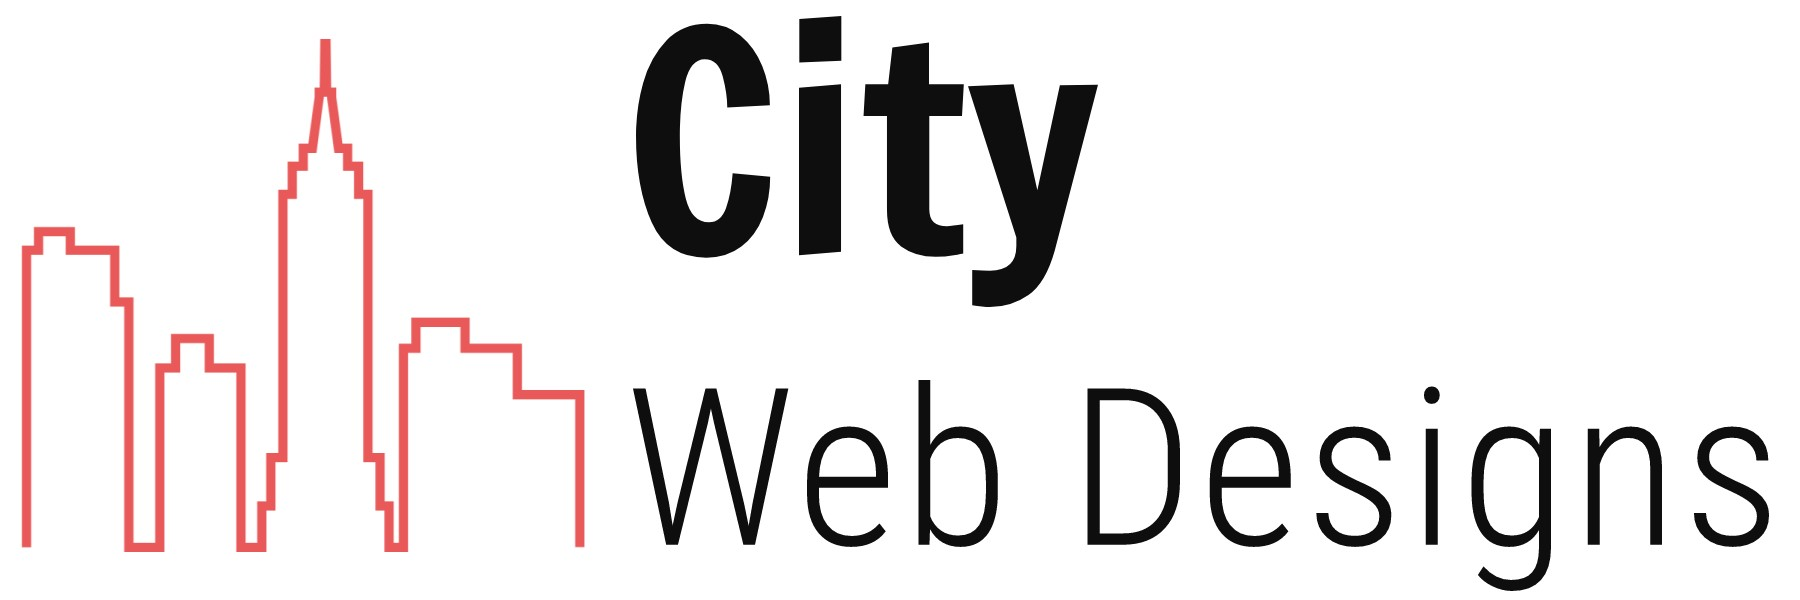 city-web-designs-logo